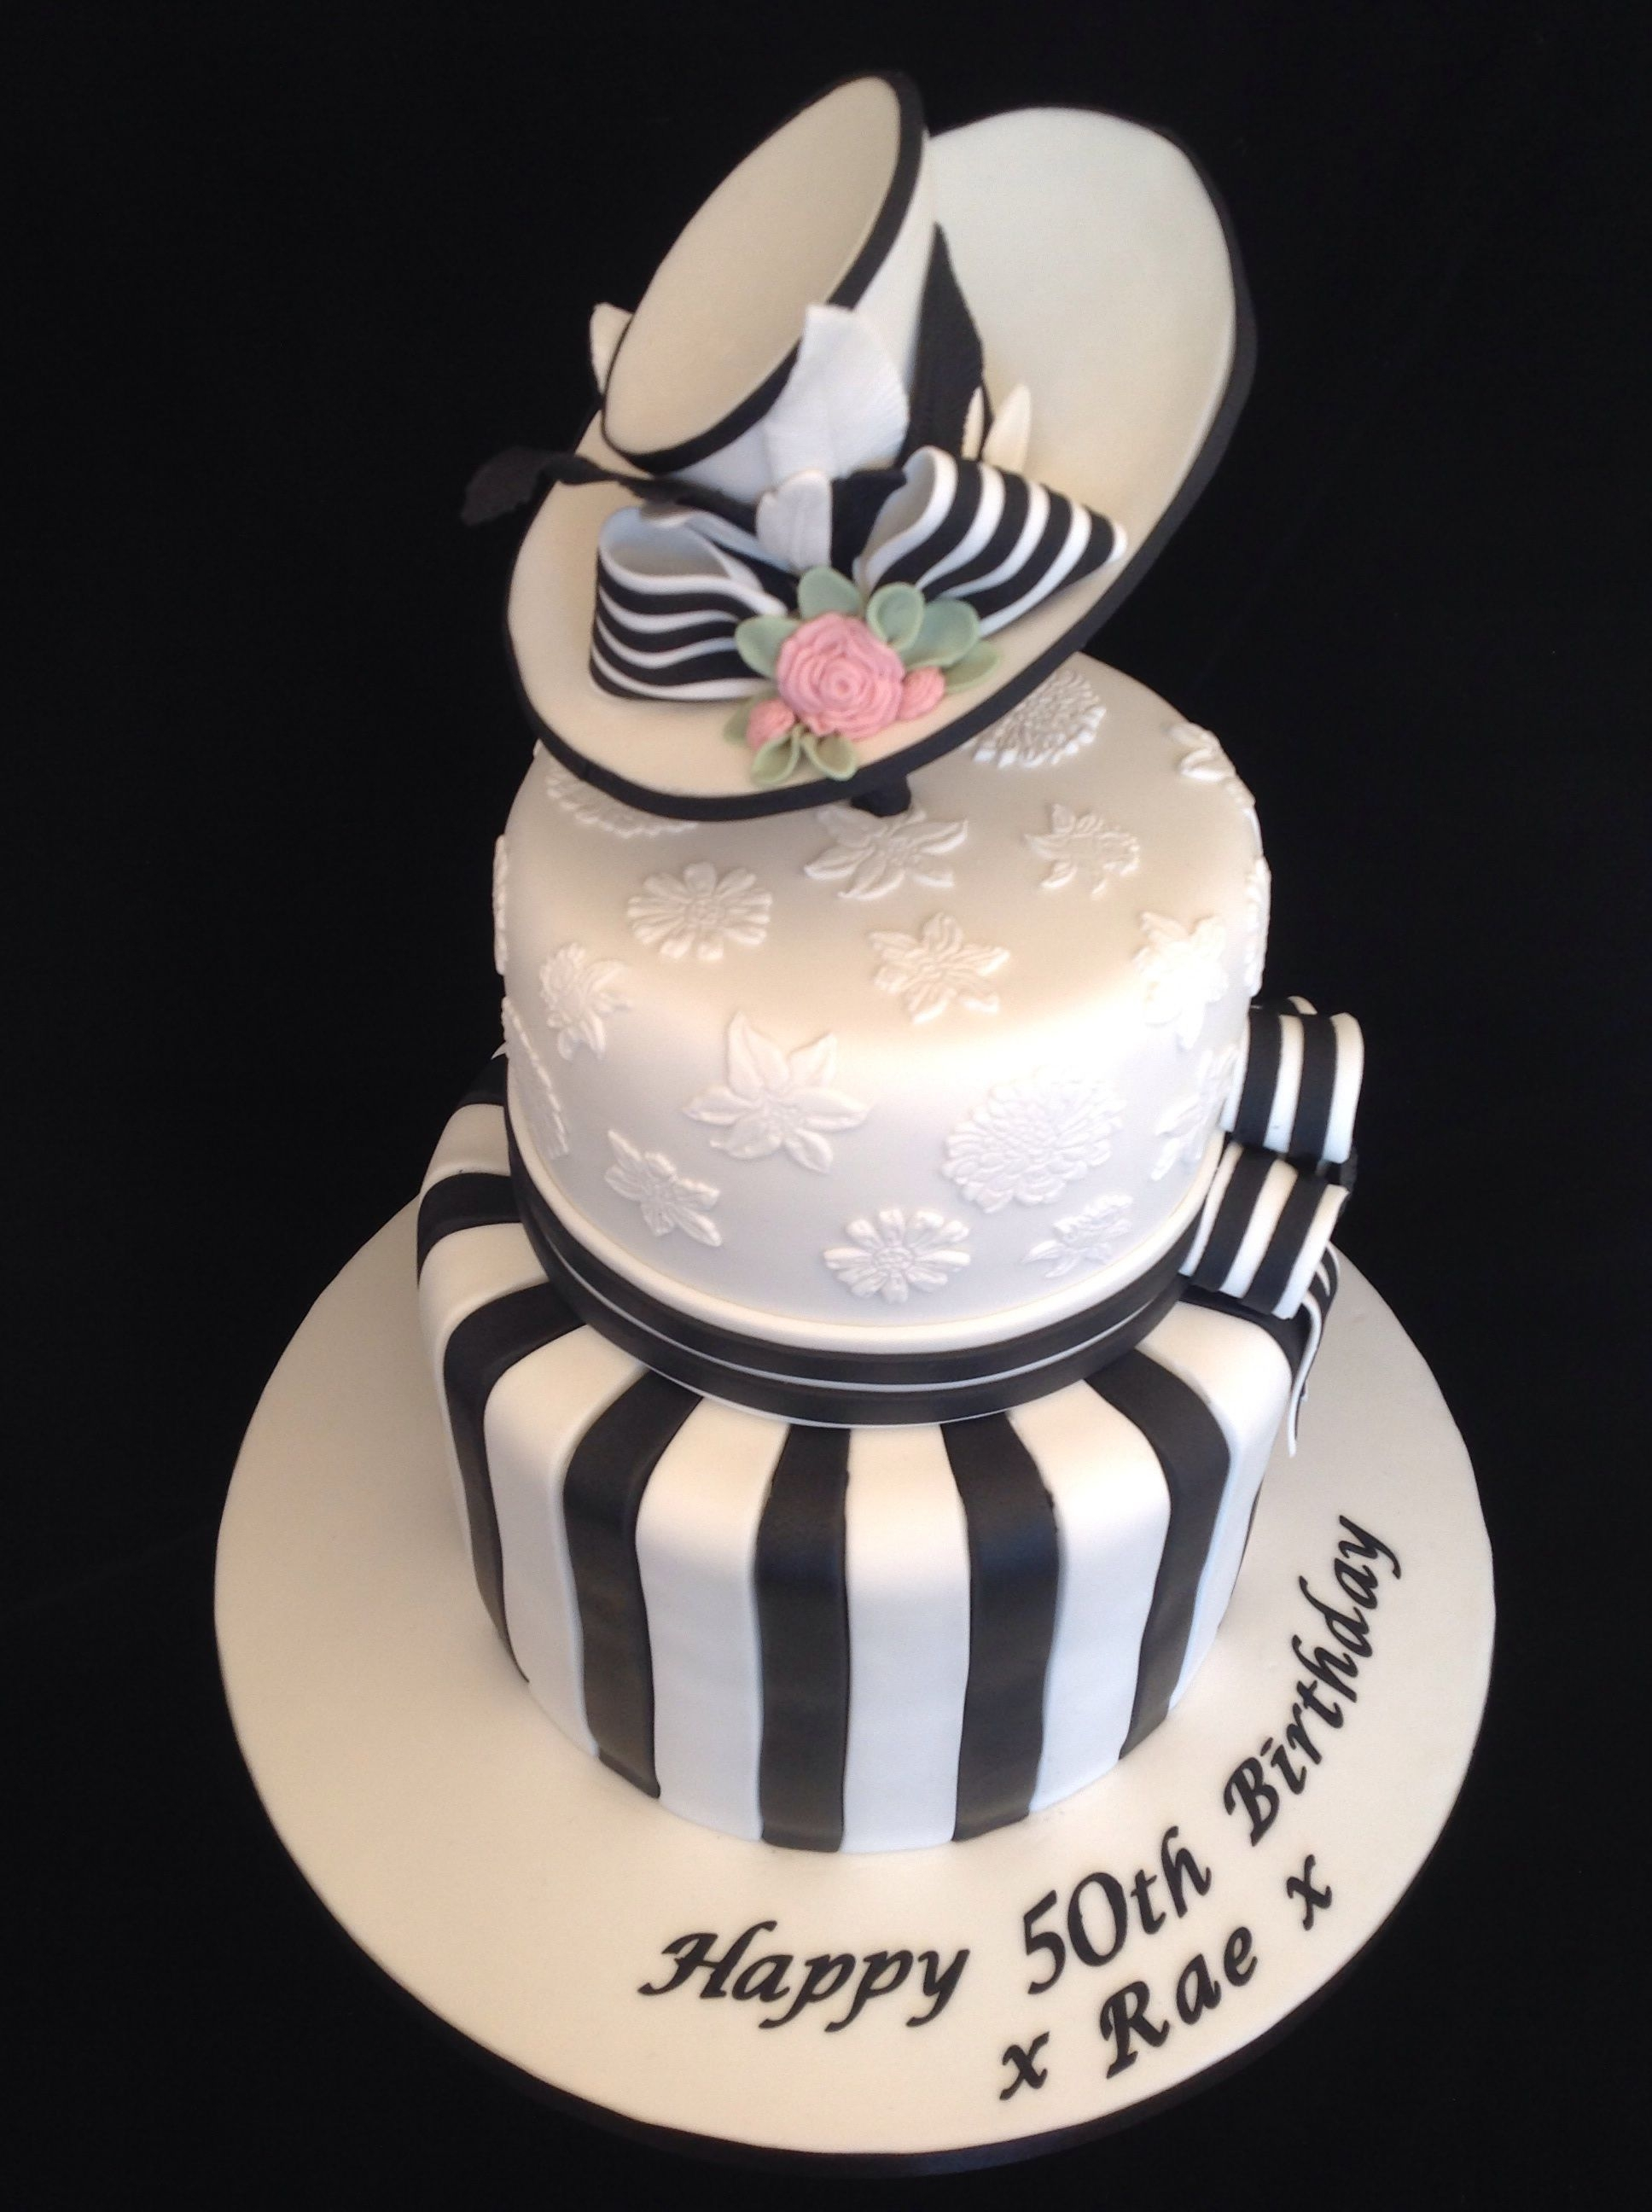 Swell Black And White My Fair Lady Birthday Cake Cakecentral Com Funny Birthday Cards Online Fluifree Goldxyz